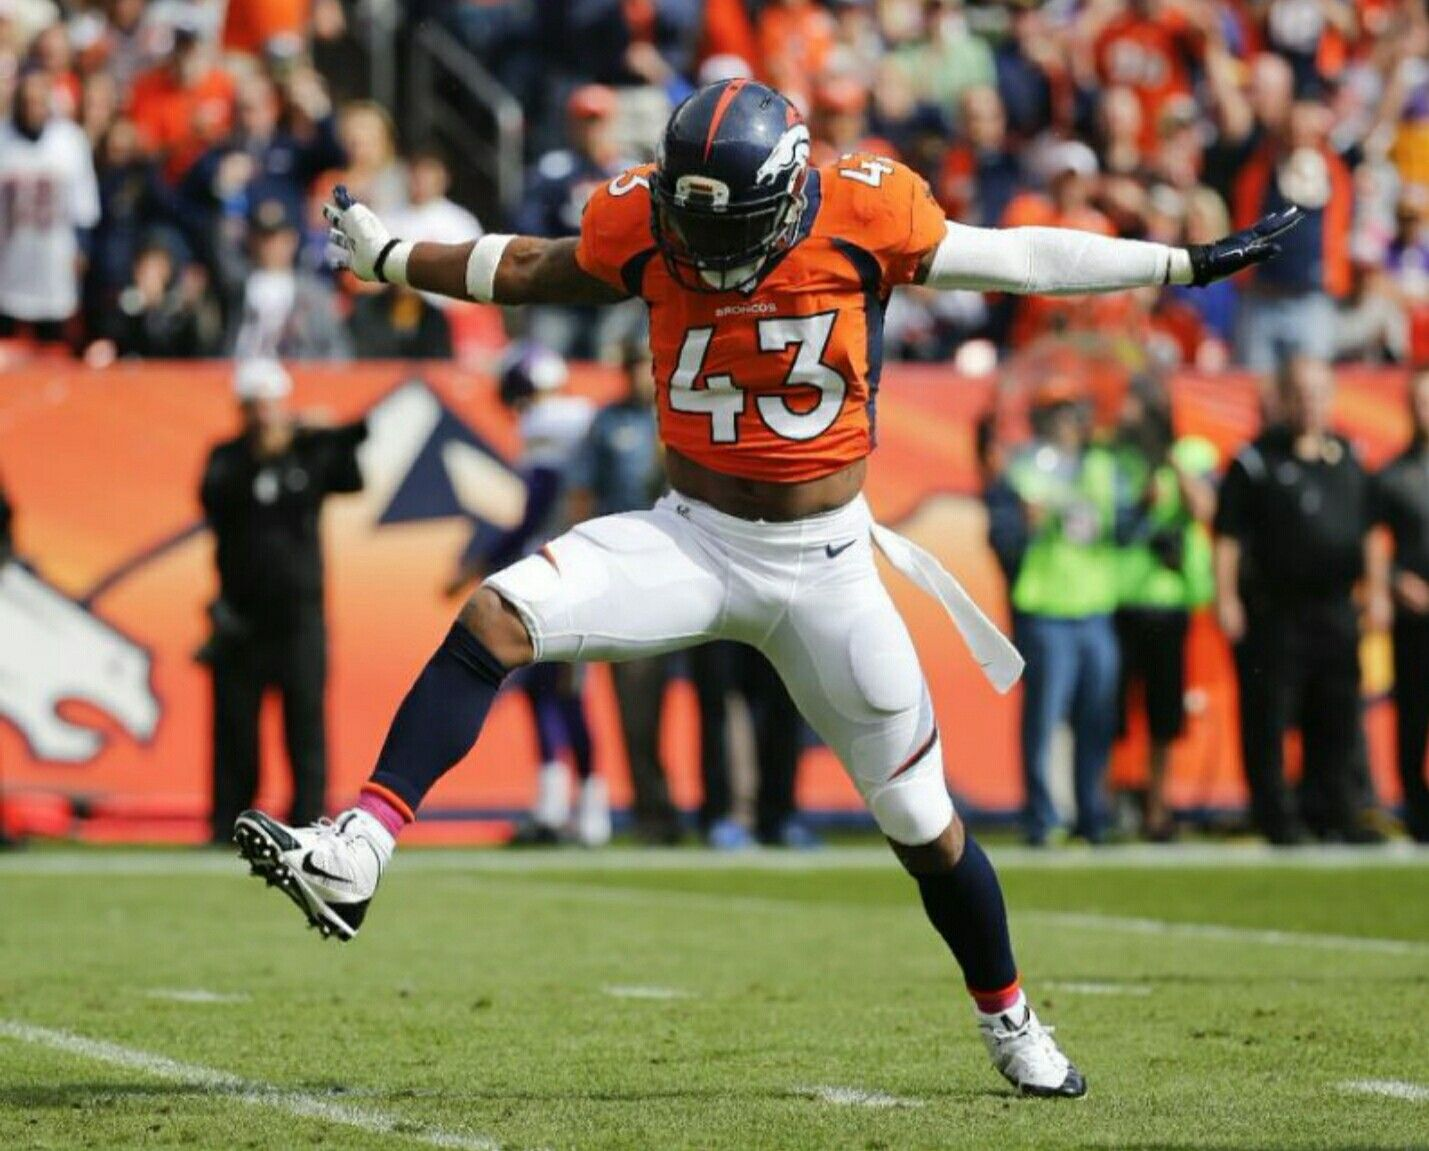 Pin by De Leon on Denver Broncos all day baby